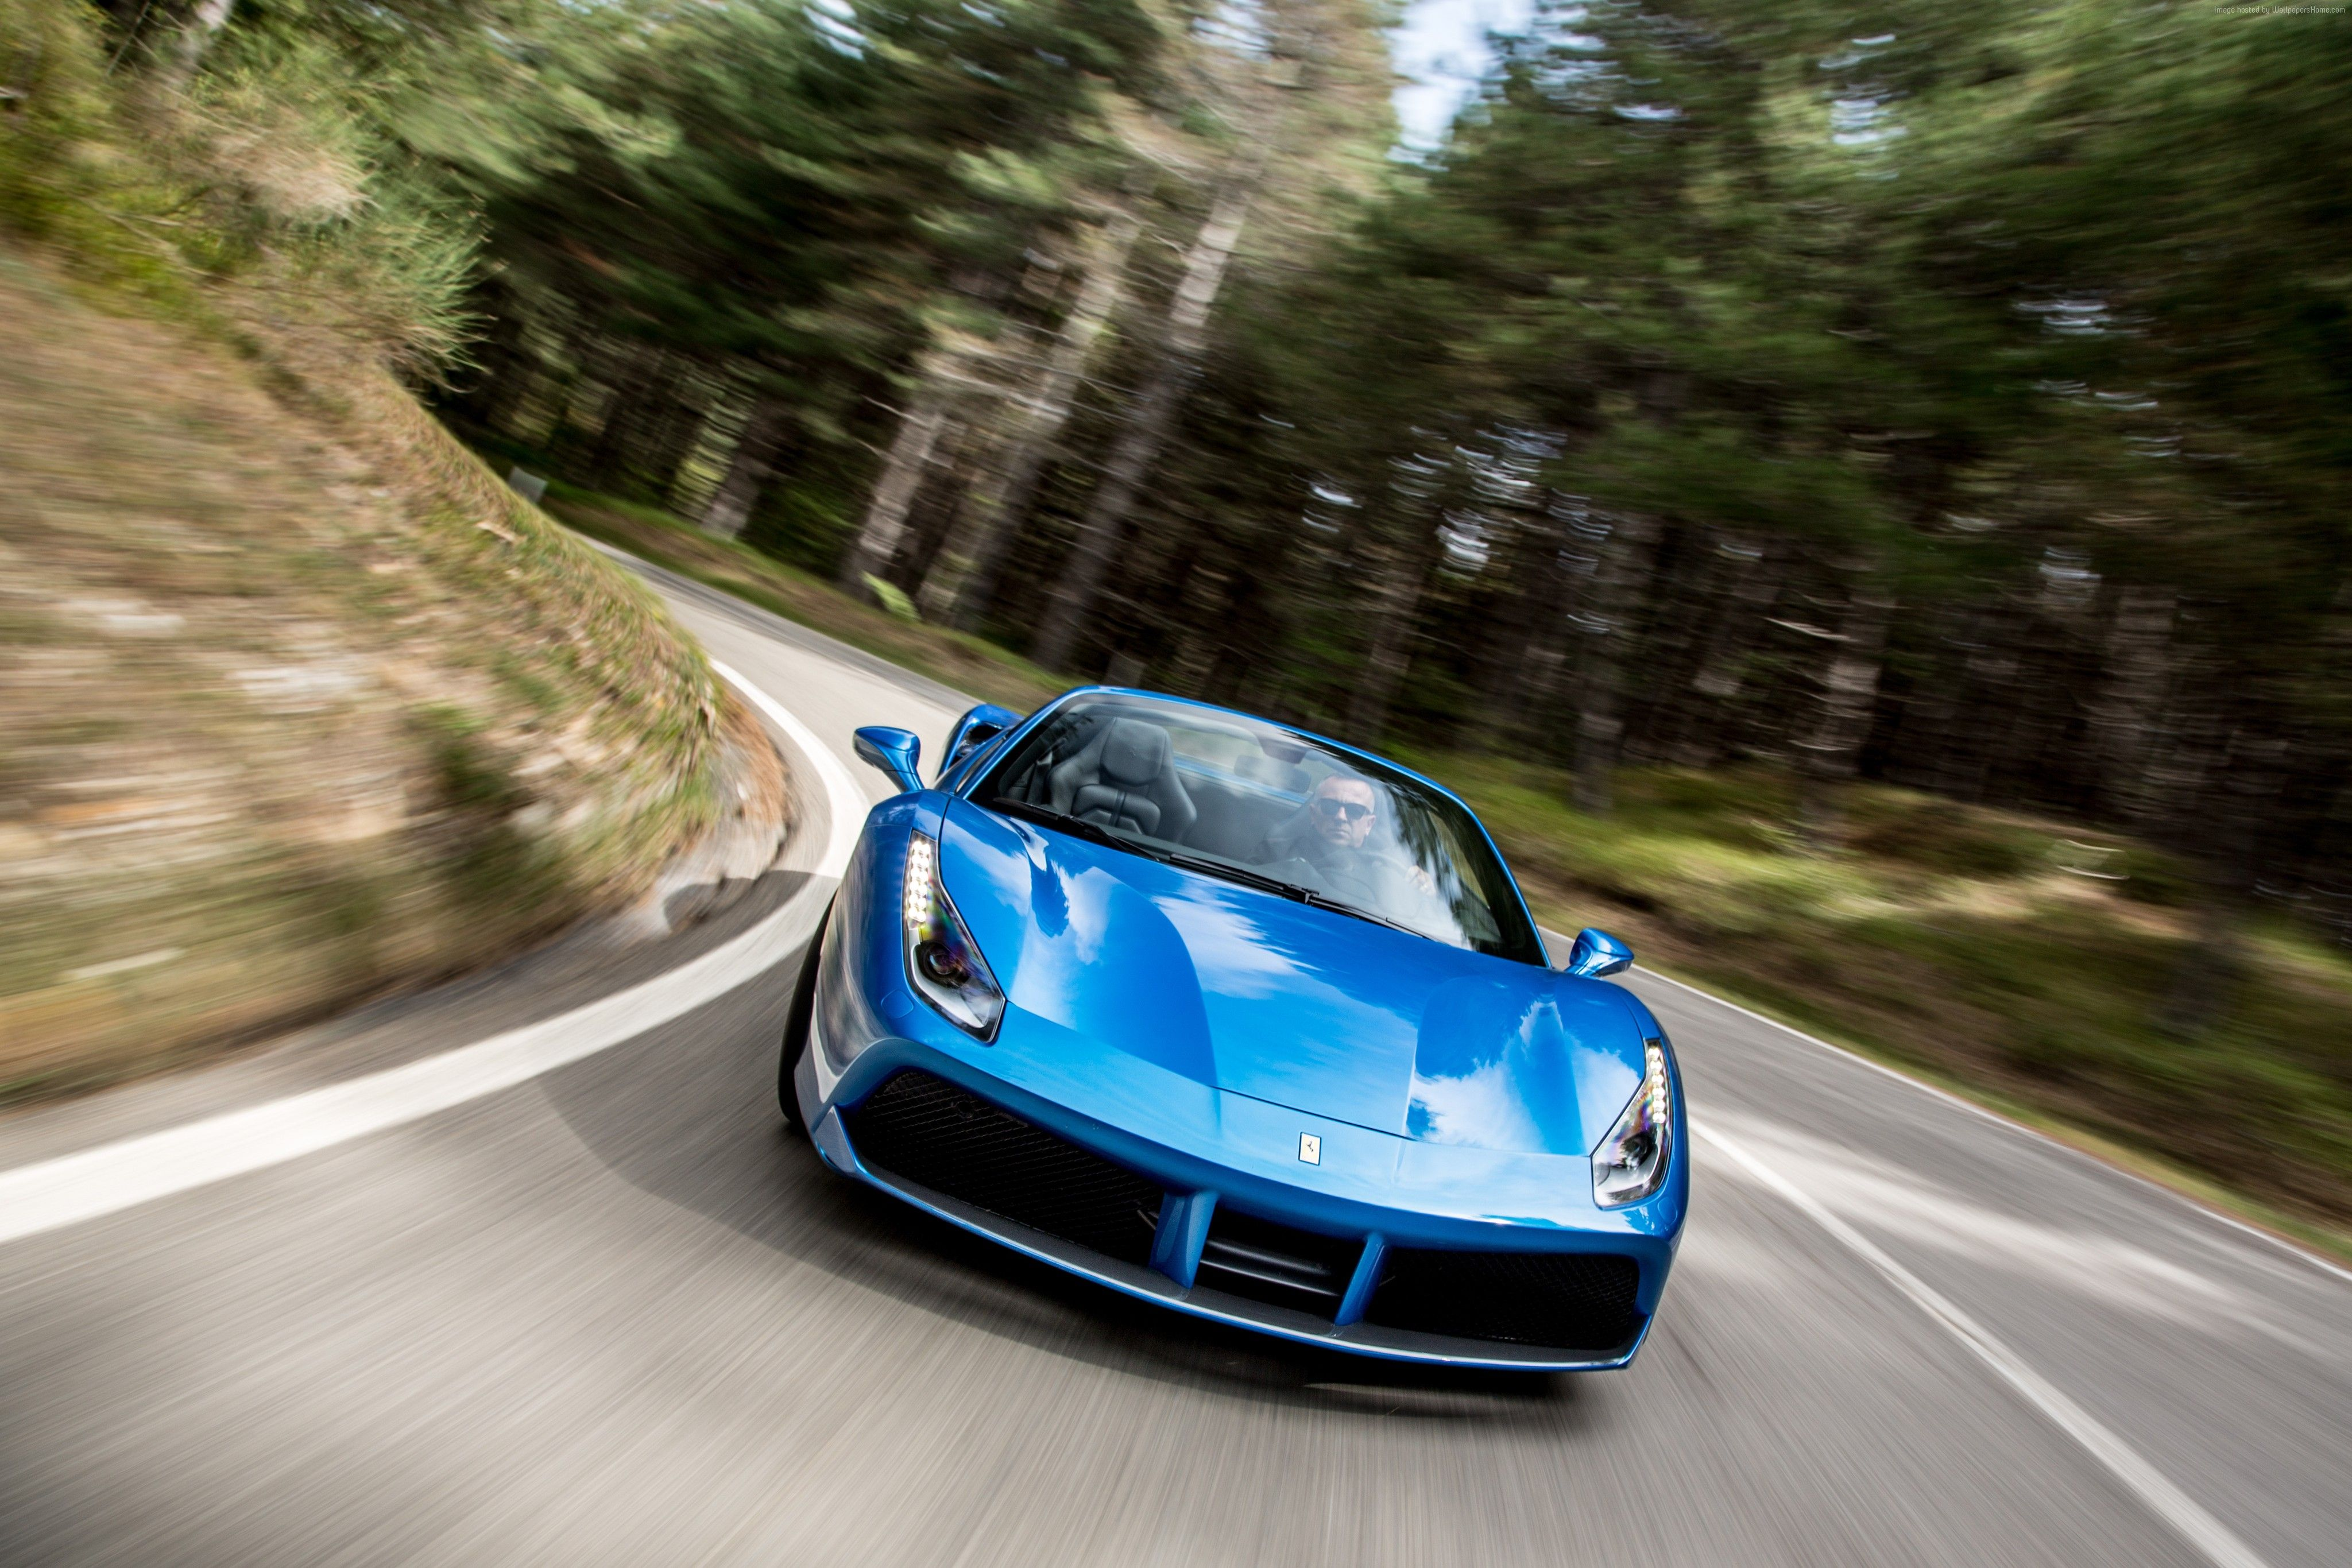 Wallpapers Ferrari 488 Spider, cabriolet, roadster, blue, Cars